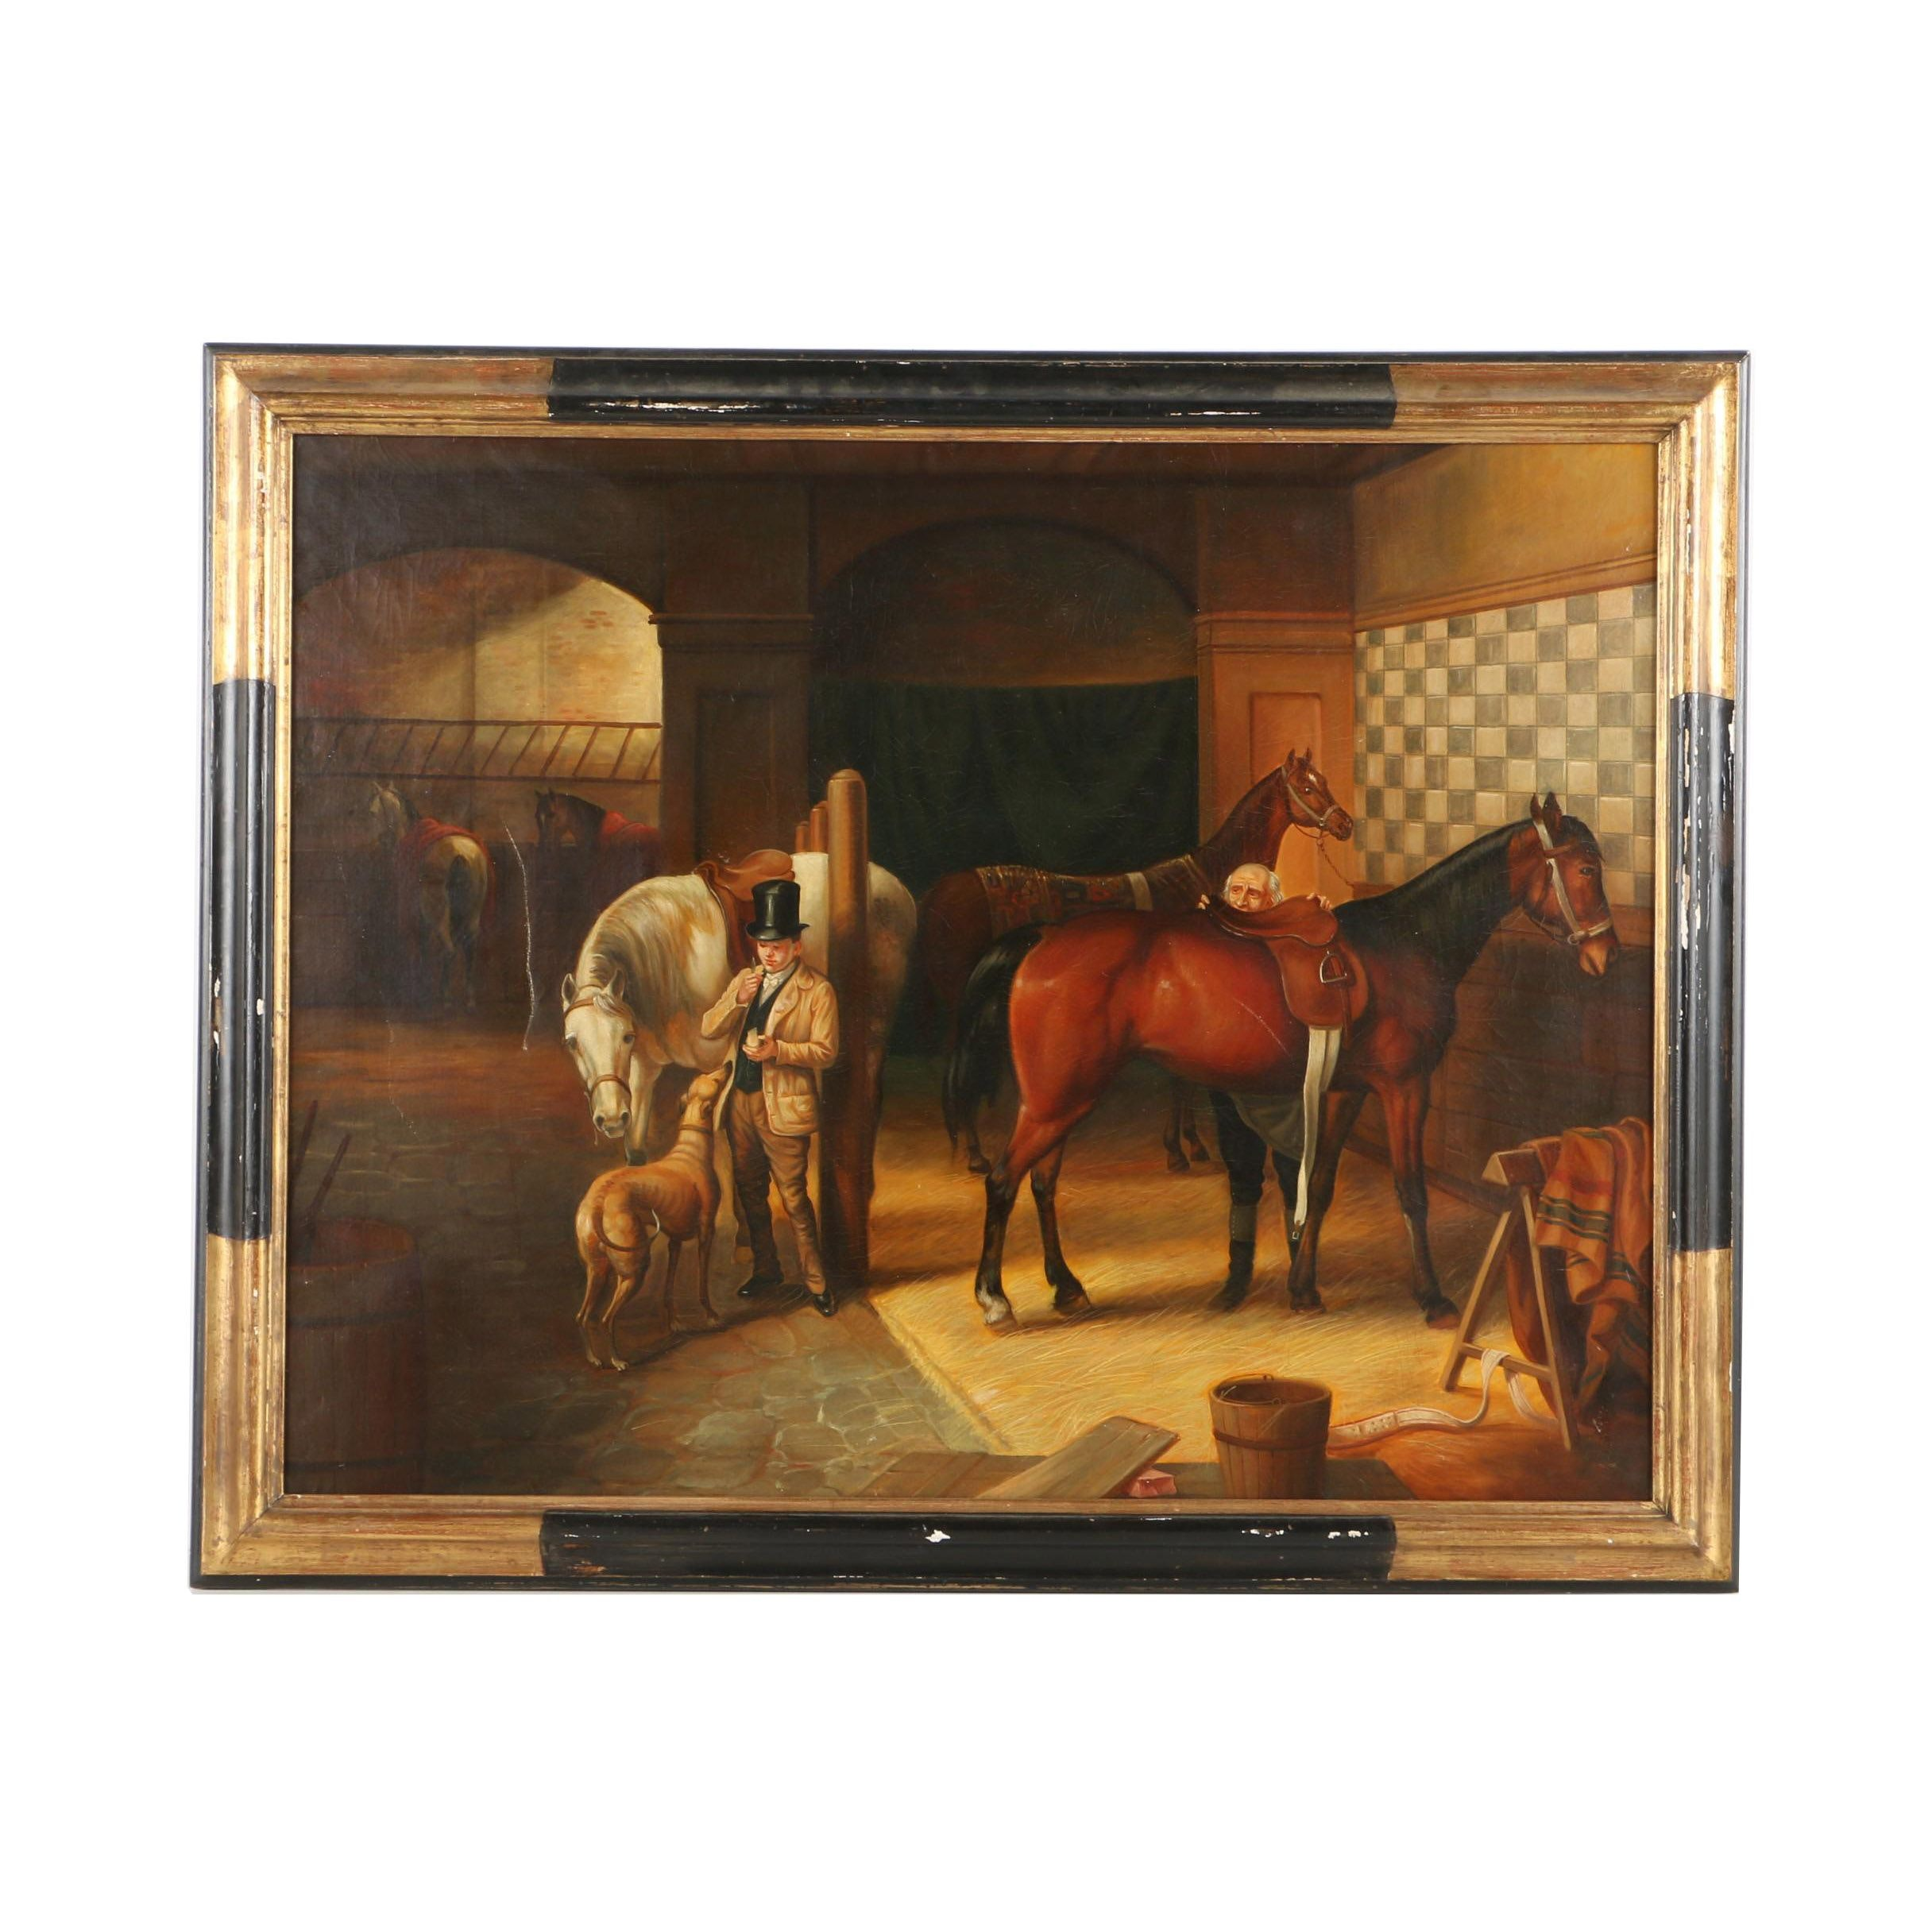 Oil Painting on Canvas of Stable Scene